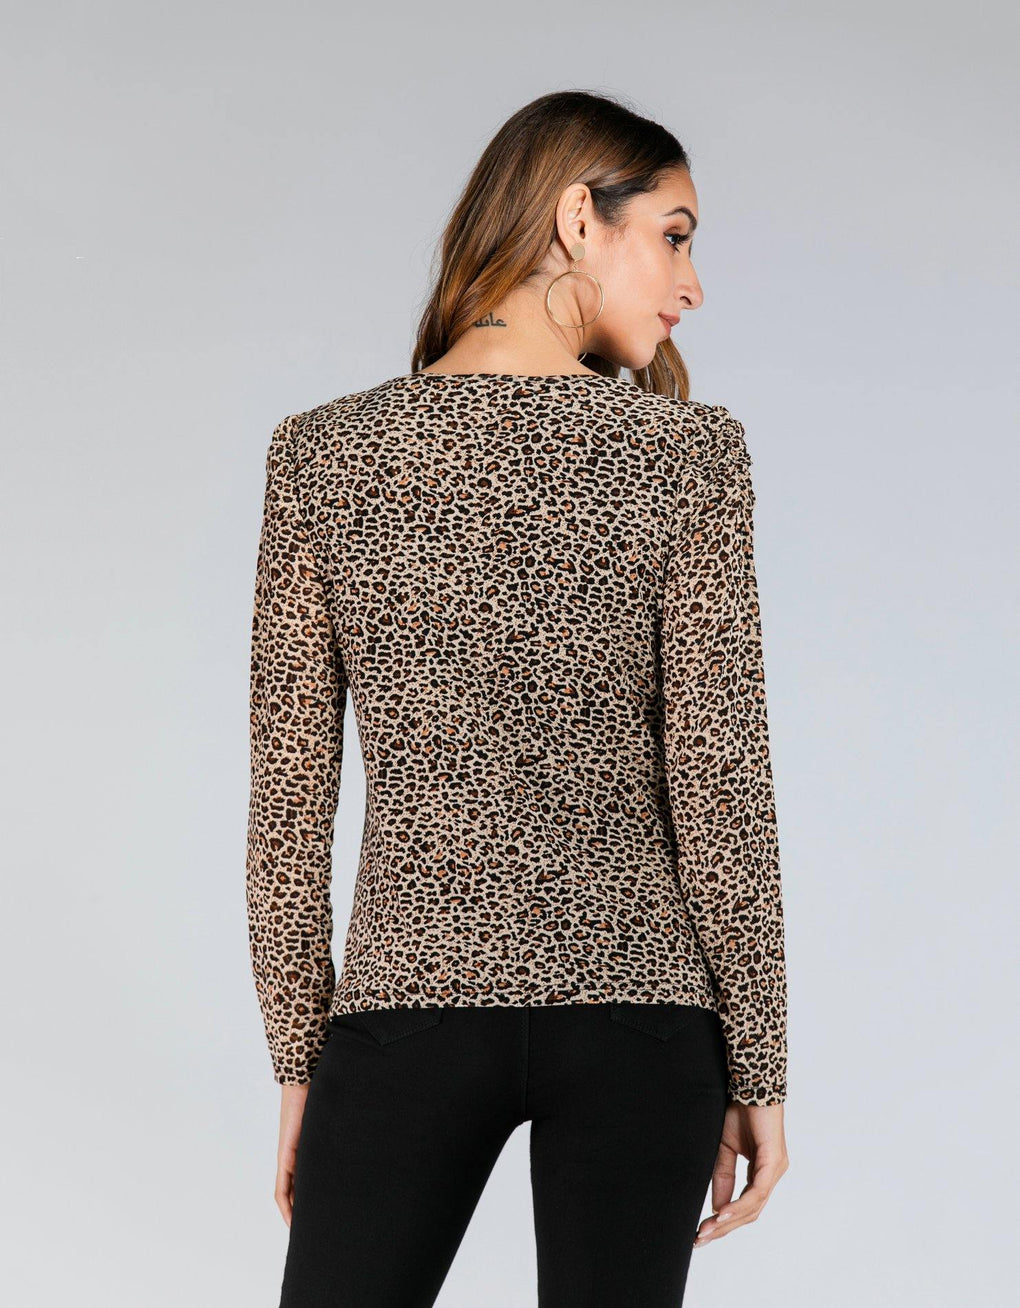 Cheetah Slim & Stretch Top